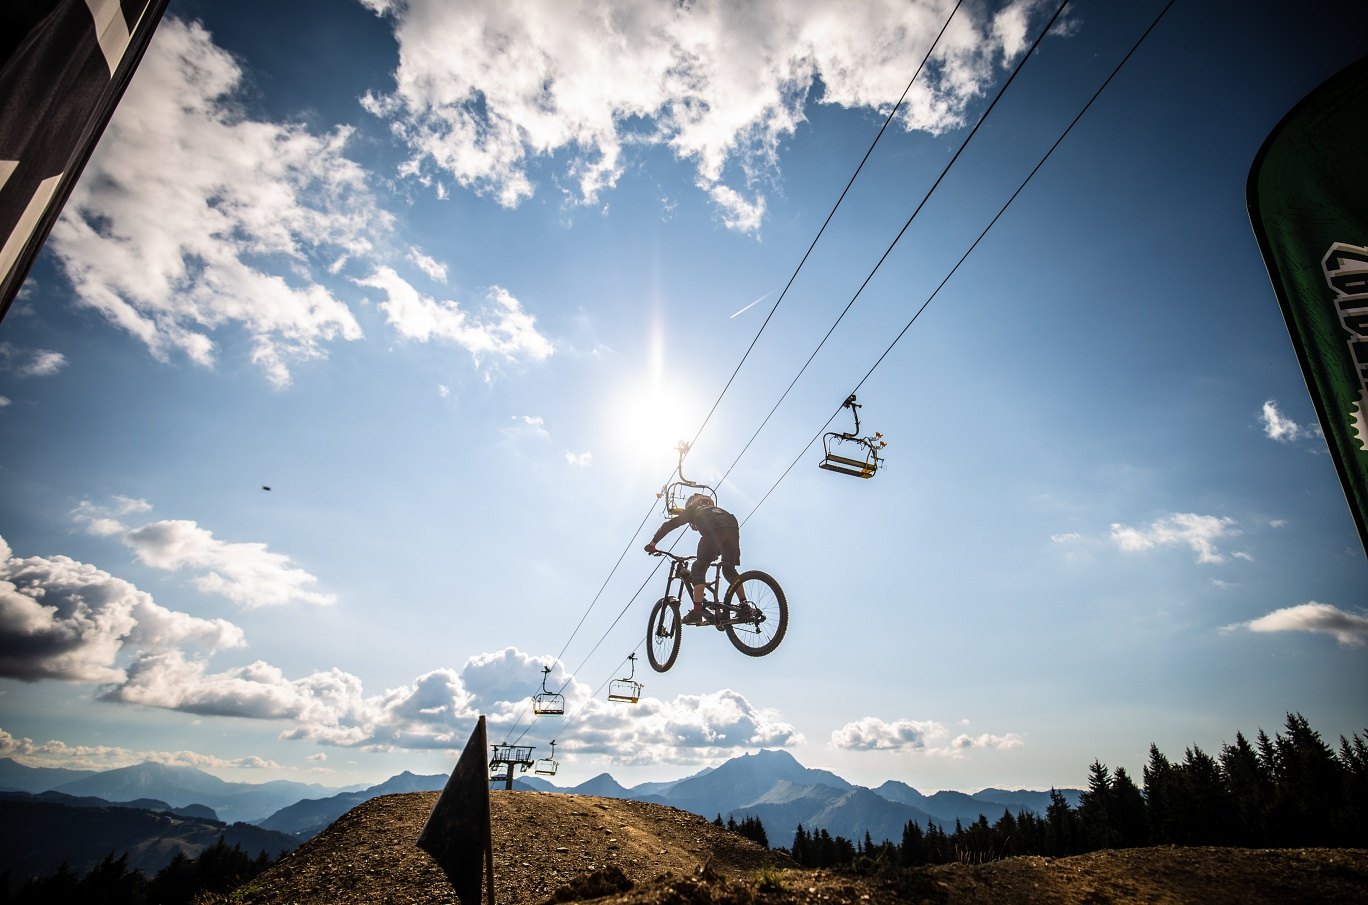 morzine mountain bike holidays, ride the downhill tracks of the world cup